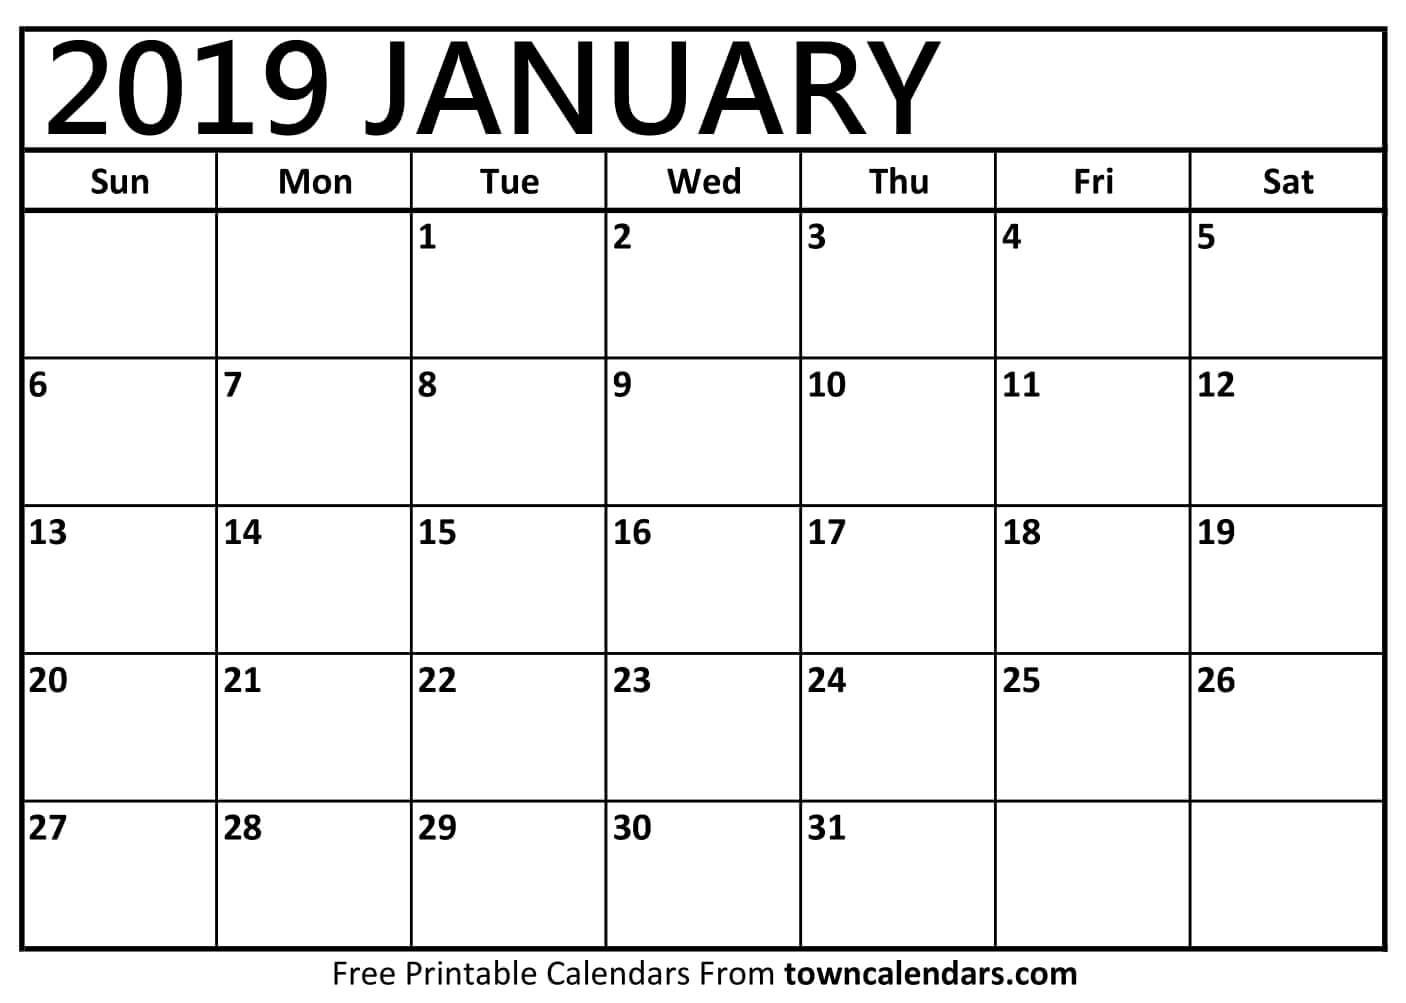 January 2019 Printable Calendar Pdf Free Monthly Template Calendar 2019 January Pdf